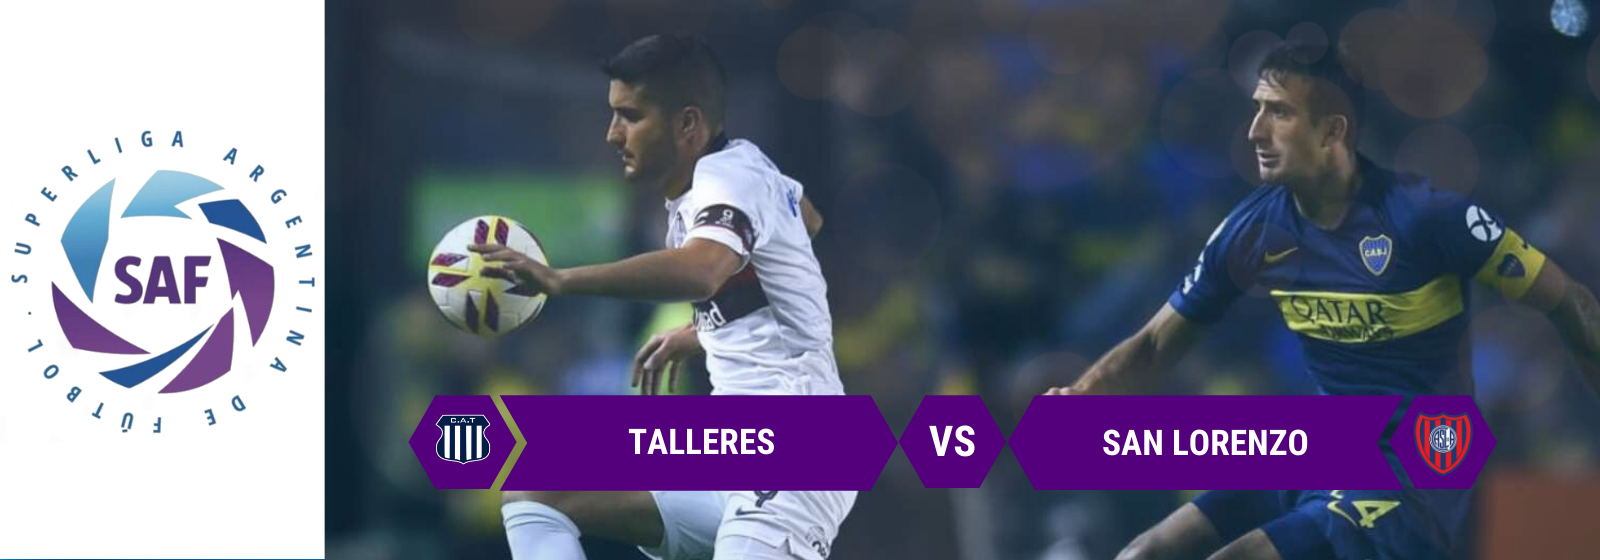 Asianconnect: Talleres vs San Lorenzo Odds for February 15, 2020